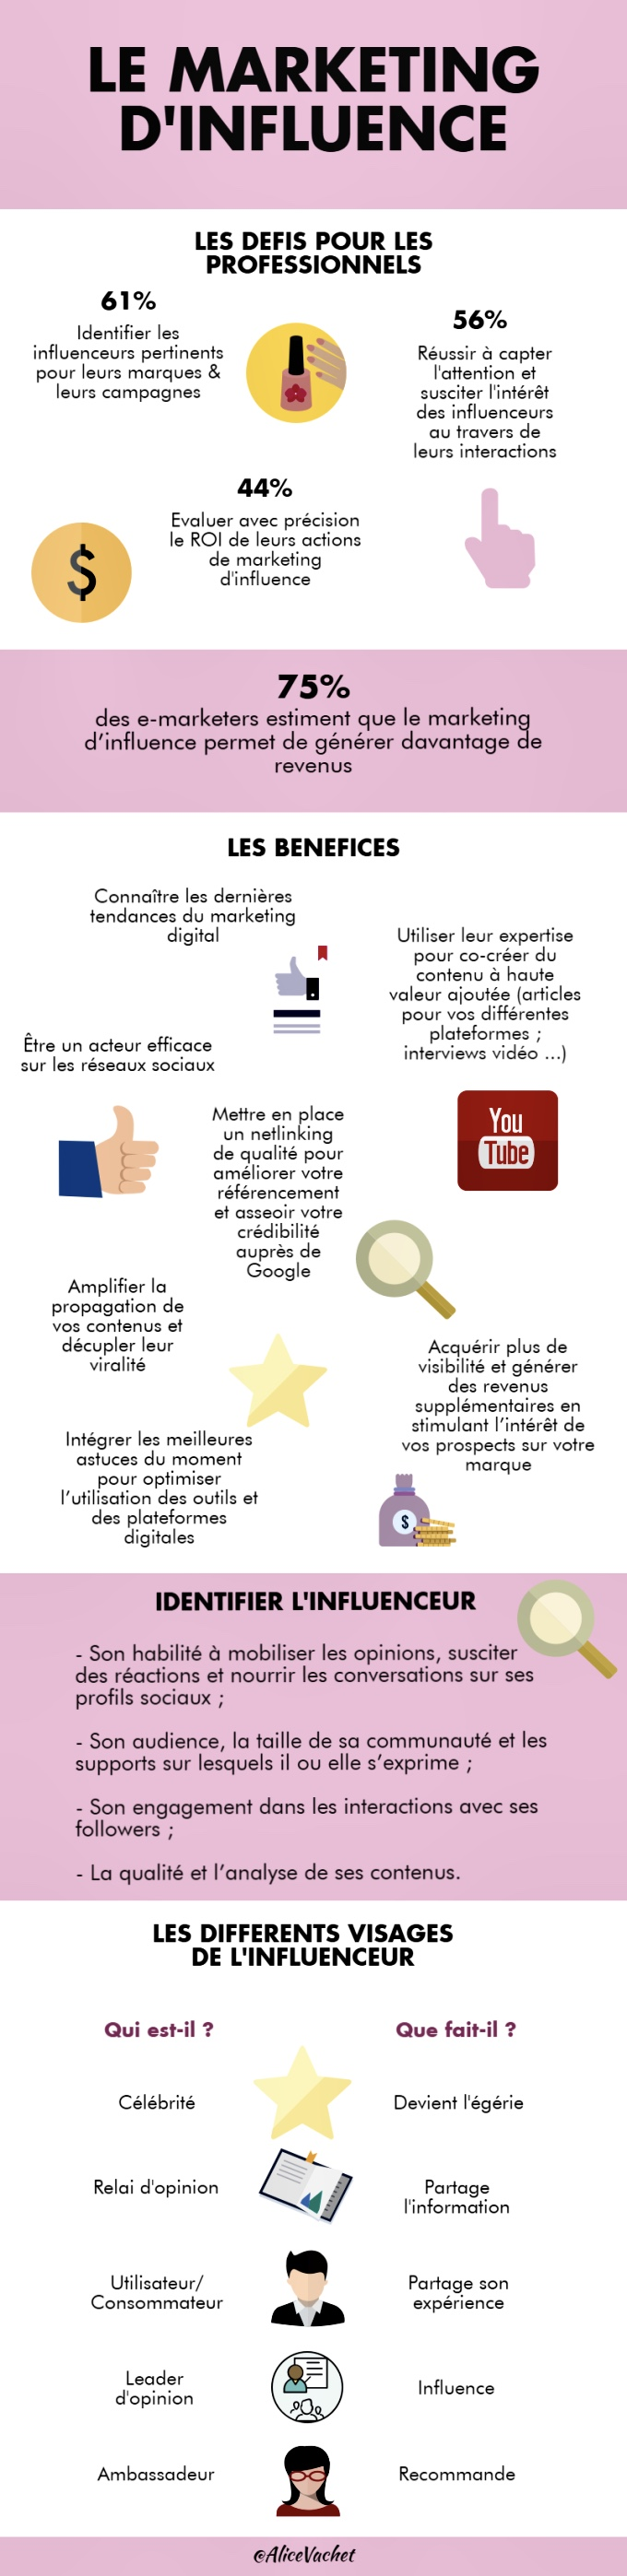 [Infographie] Le Marketing d'Influence 📸